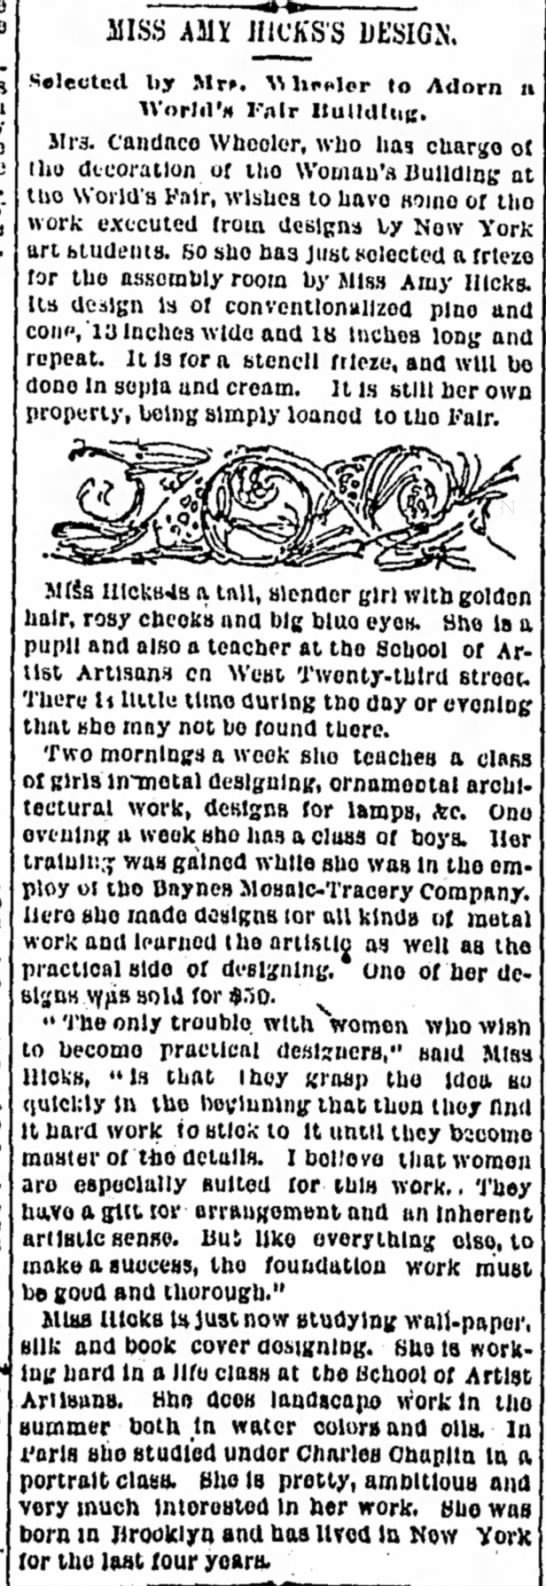 Miss Amy Hick's Design. The World (New York, New York) 8 April 1893, p 8 -